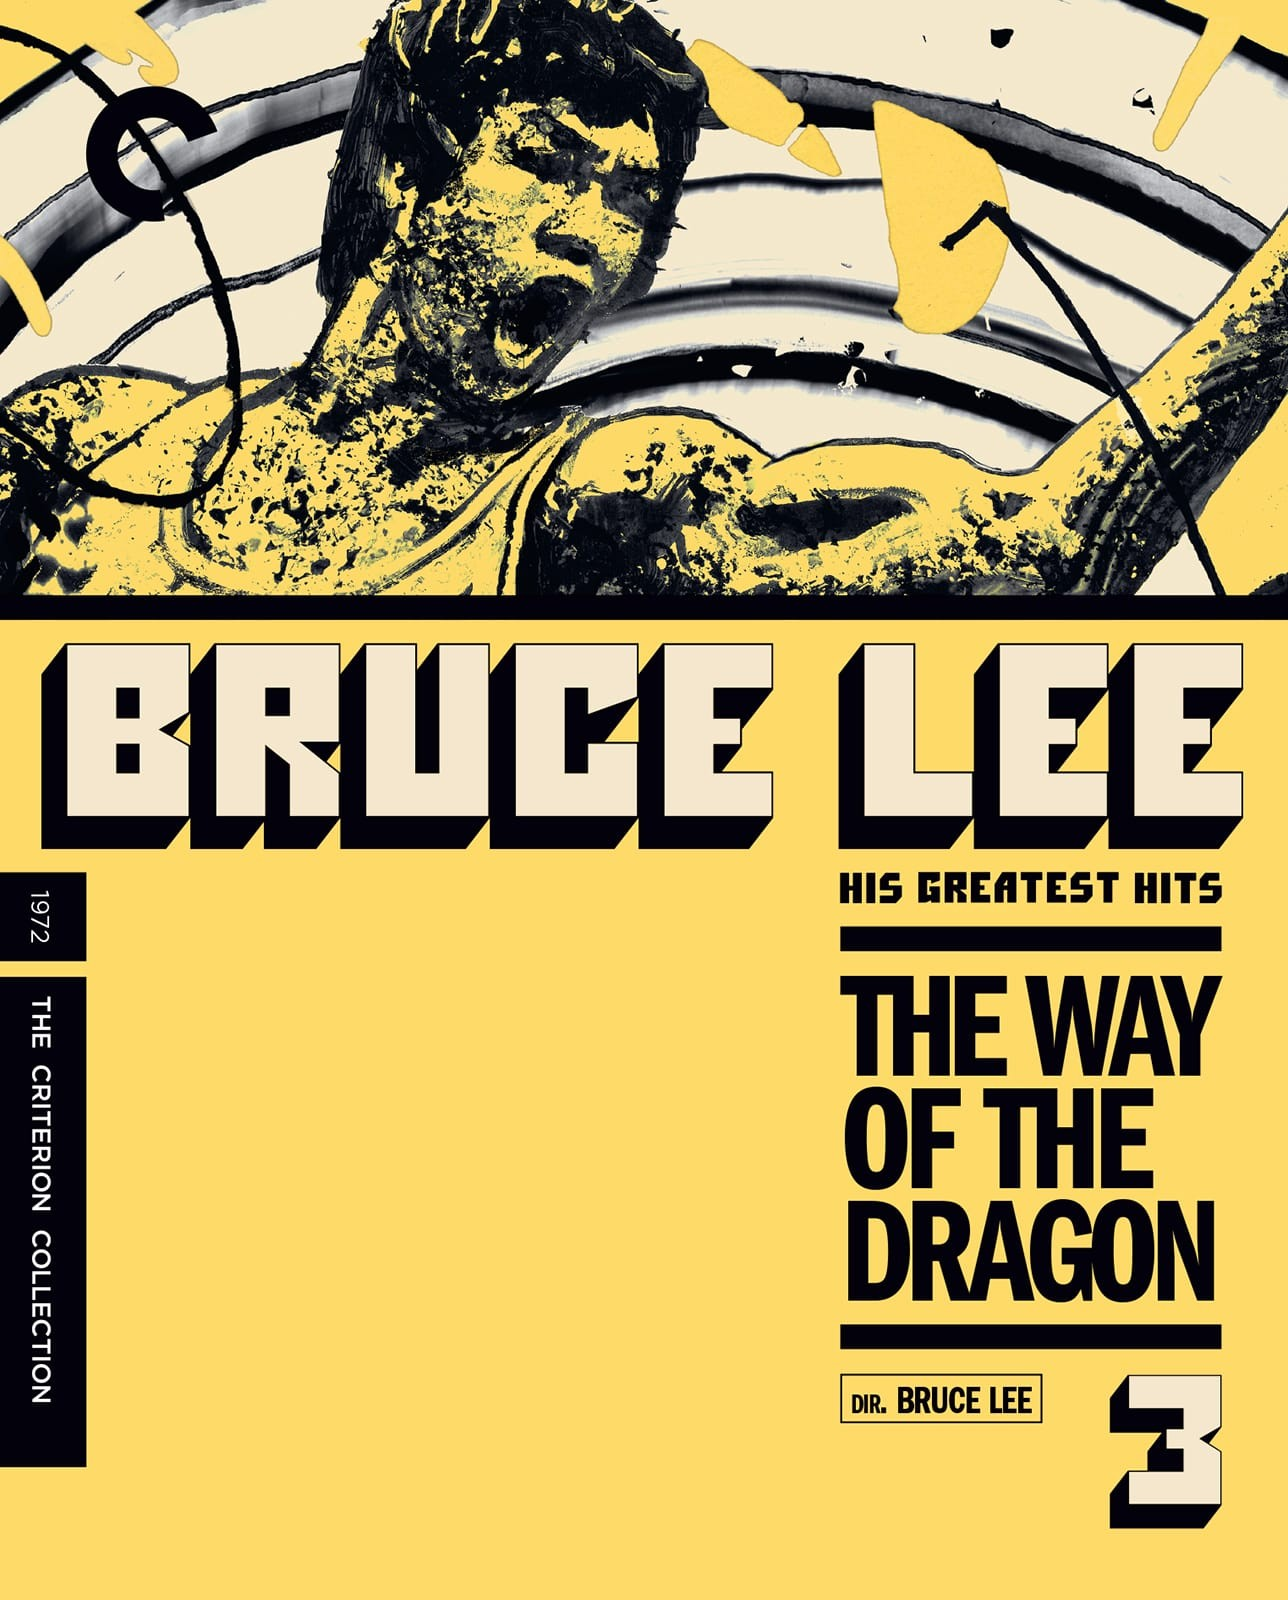 The Way of the Dragon (1972) | The Criterion Collection